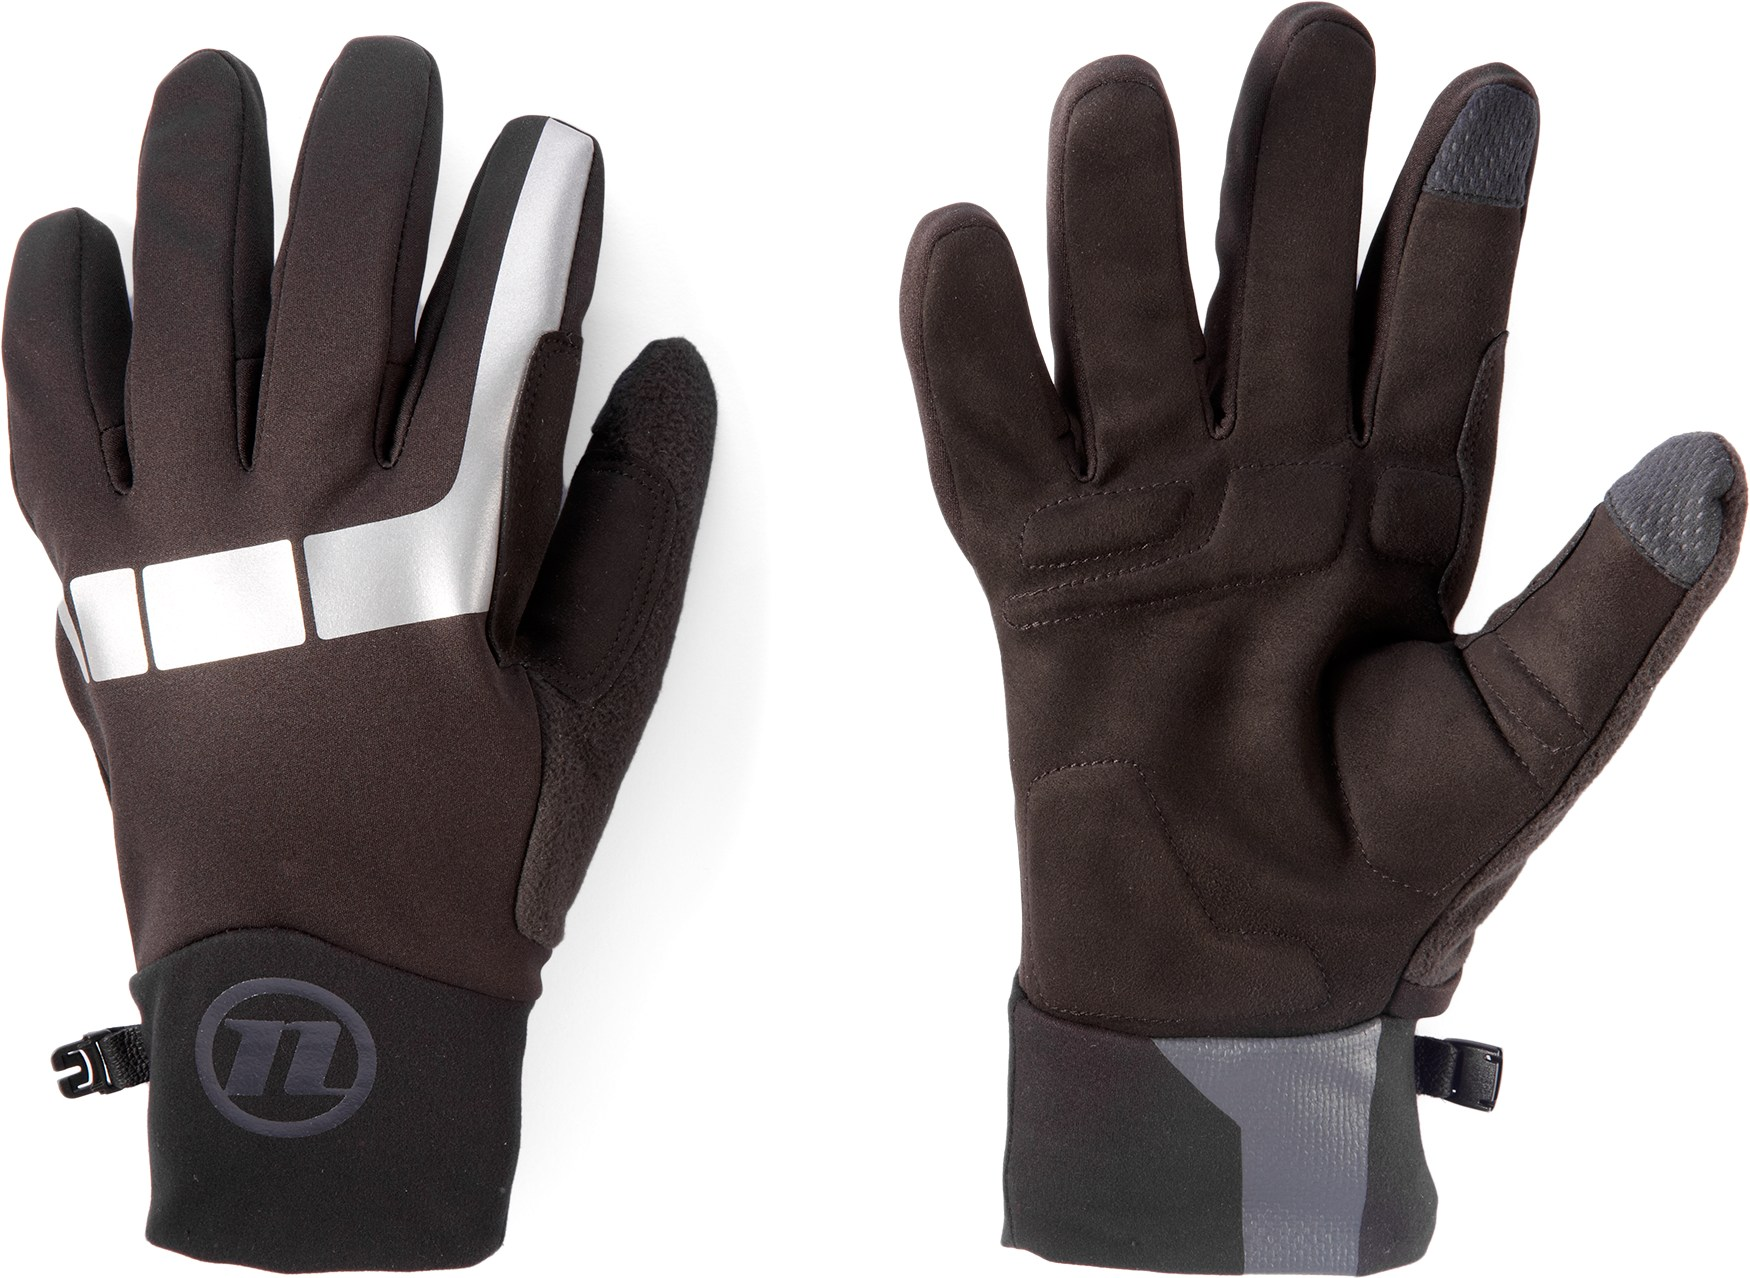 Novara Headwind Bike Gloves